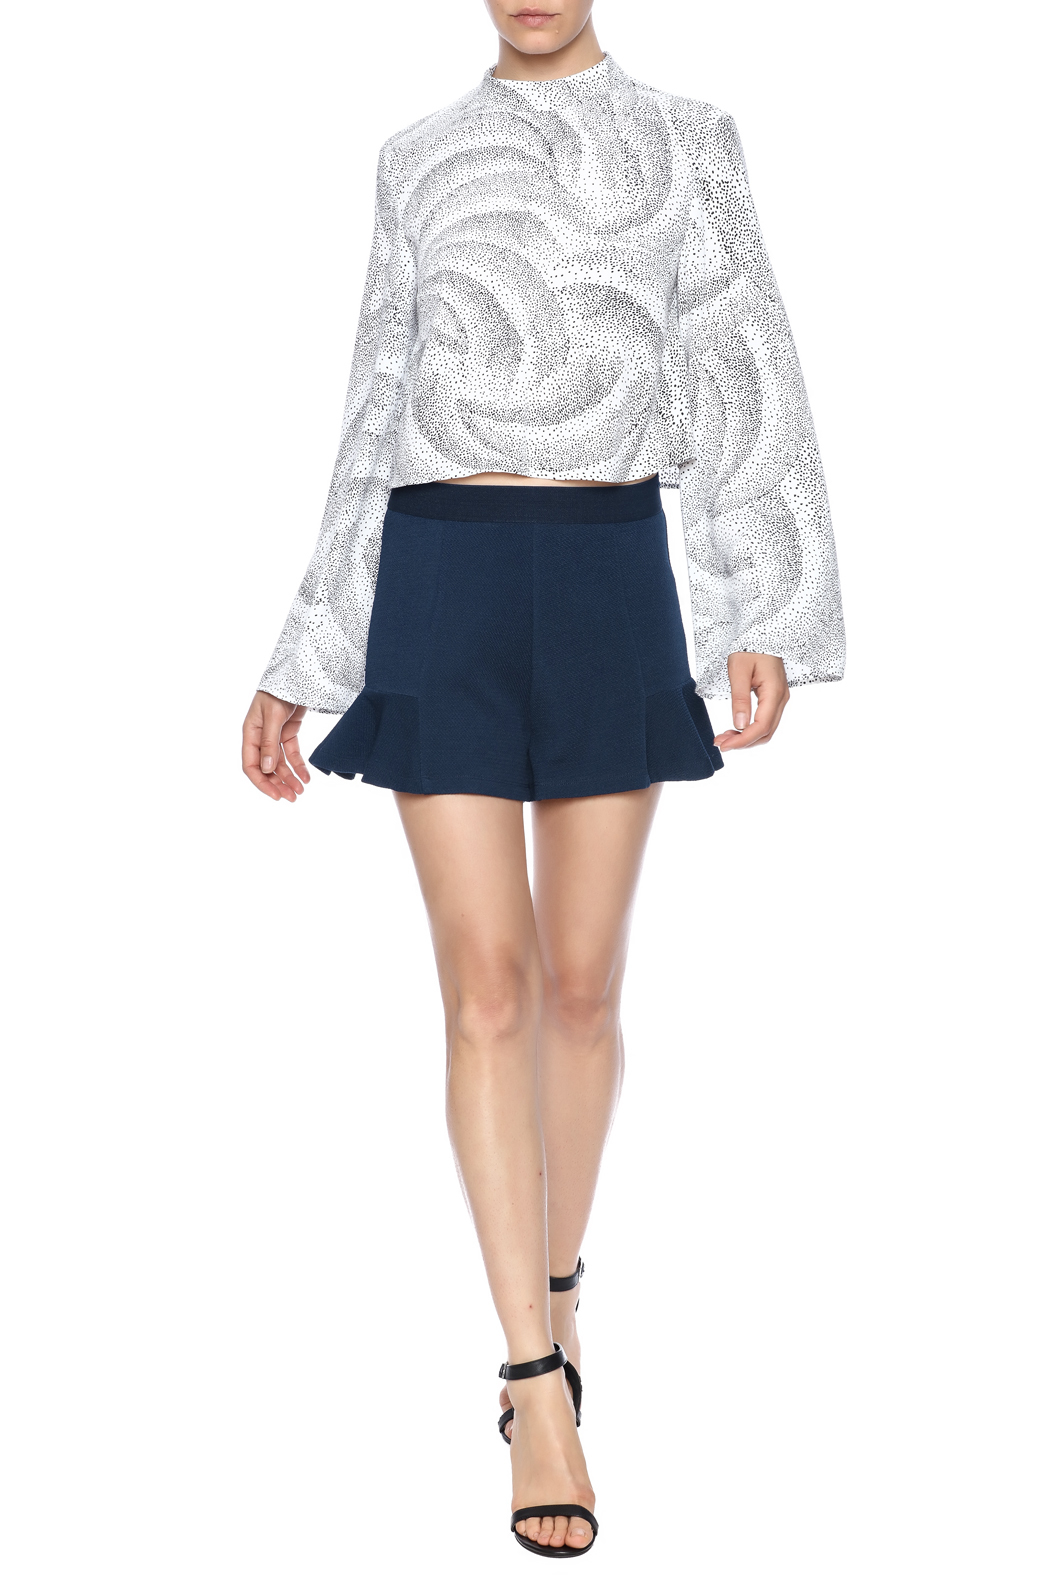 Theo Paris Navy Flare Shorts - Front Full Image